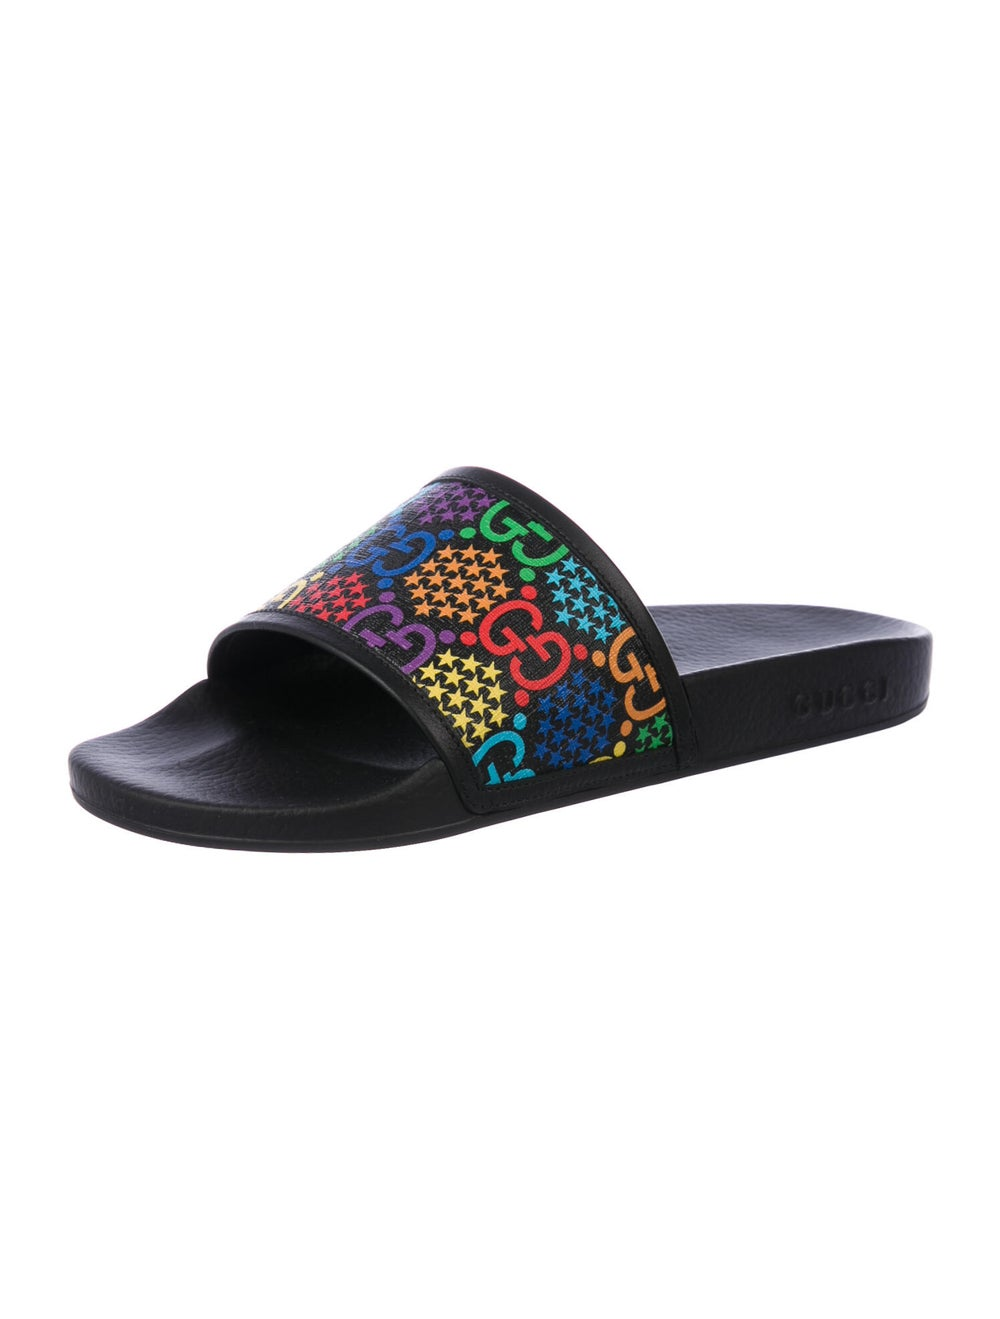 Gucci Psychedelic Printed Slides w/ Tags Black - image 2